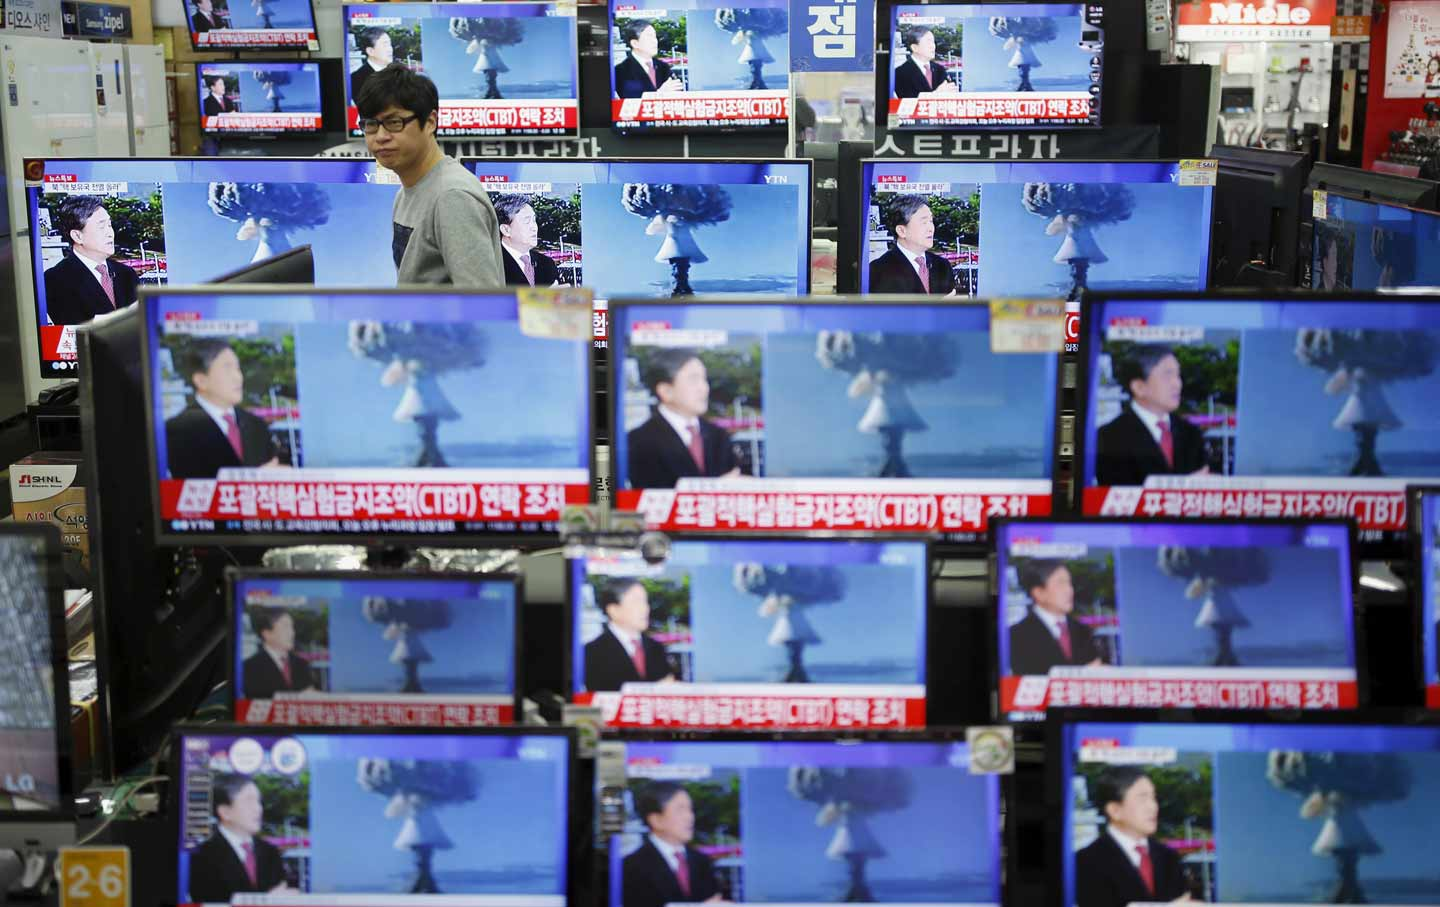 Televisions broadcast a report on North Korea's nuclear test.